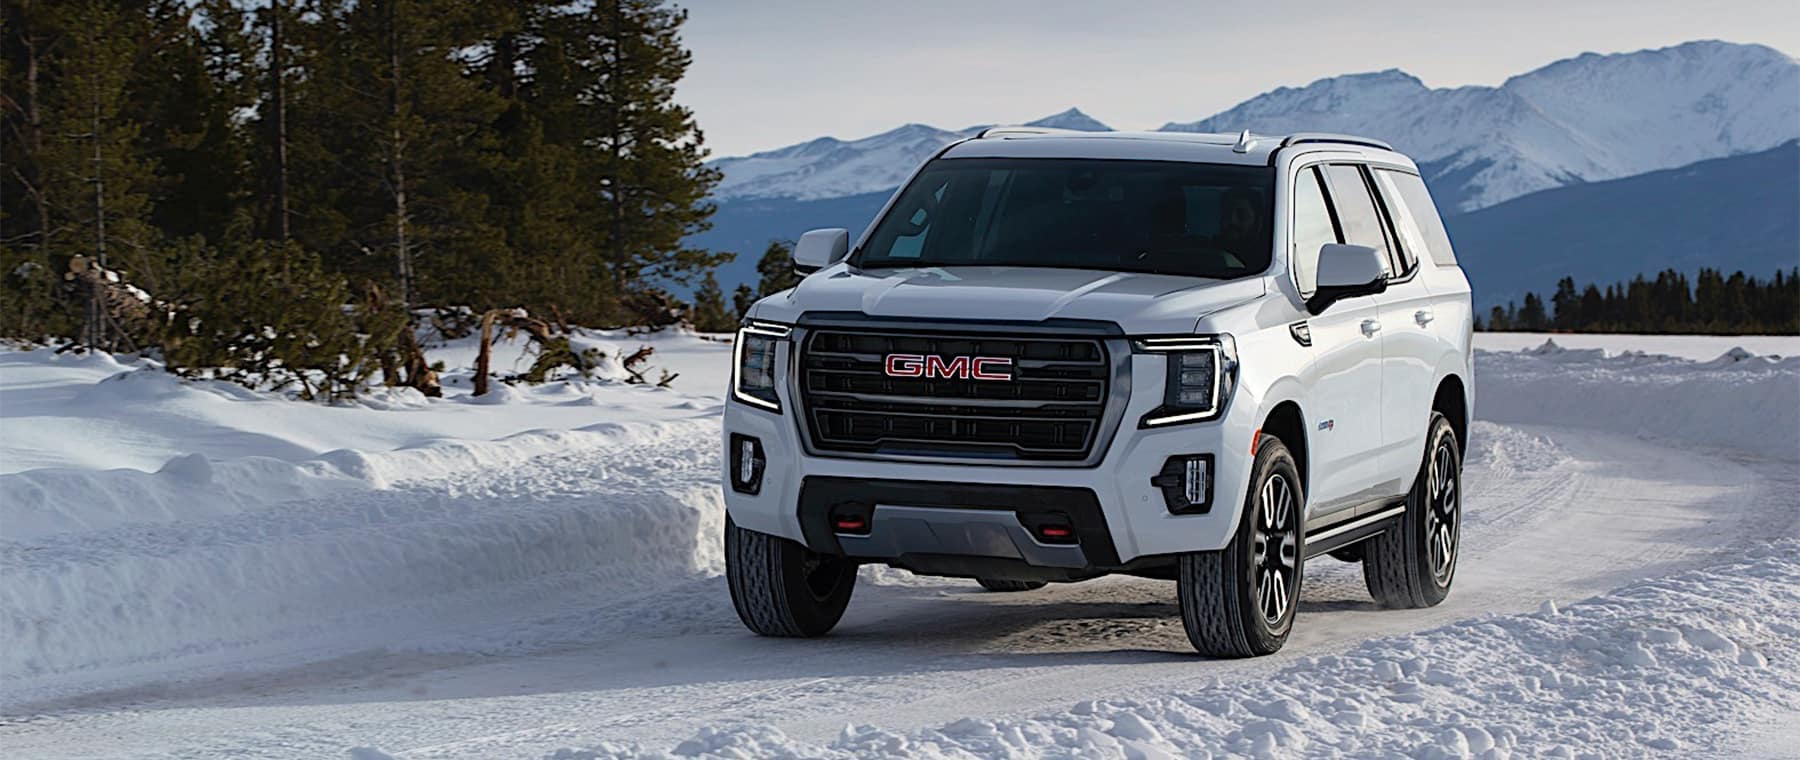 2021 GMC Yukon white driving on snowy path